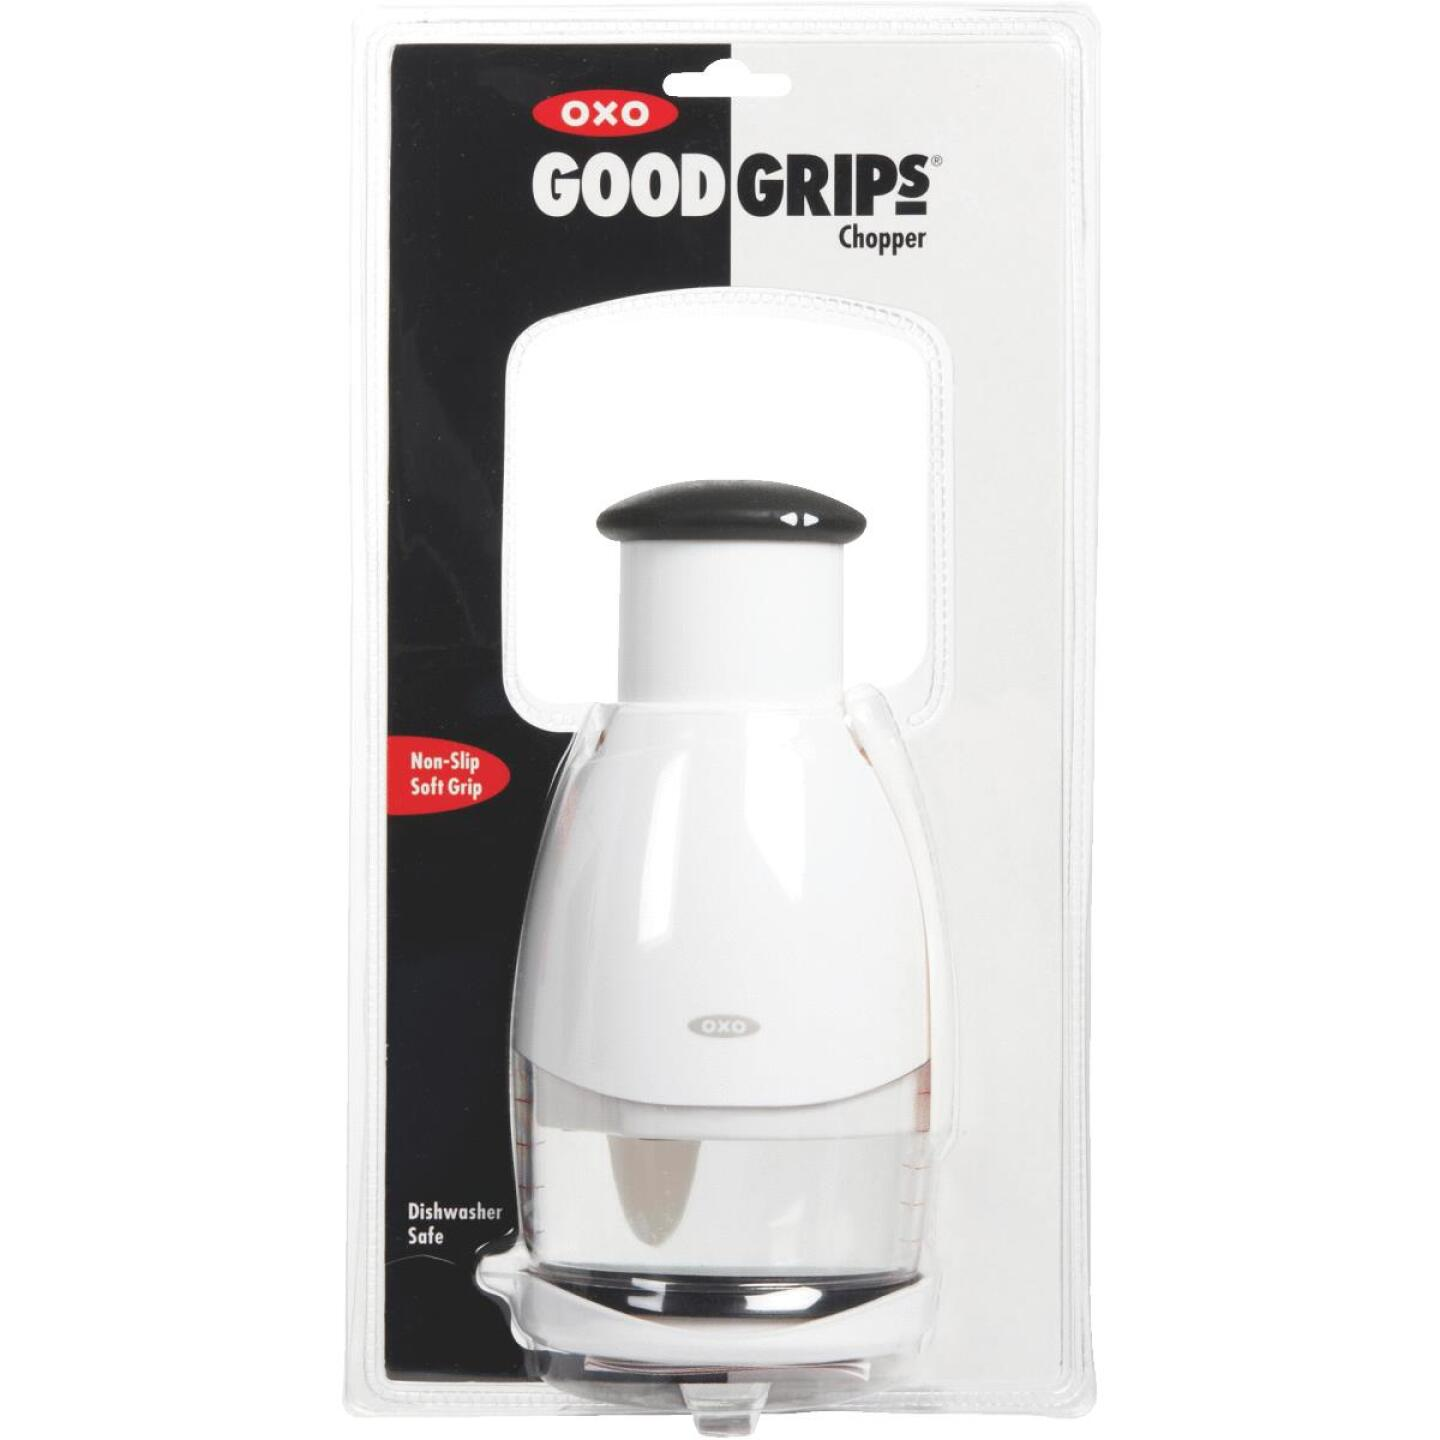 OXO Good Grips 1 Cup Food Chopper Image 2